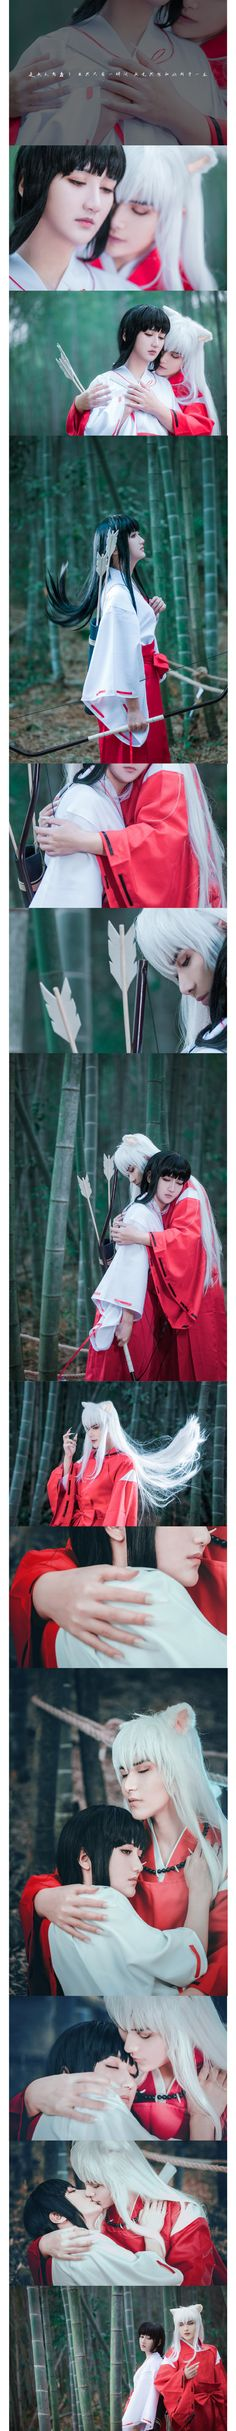 Omg did they finally find someone who actually pulls off the inuyasha cosplay?